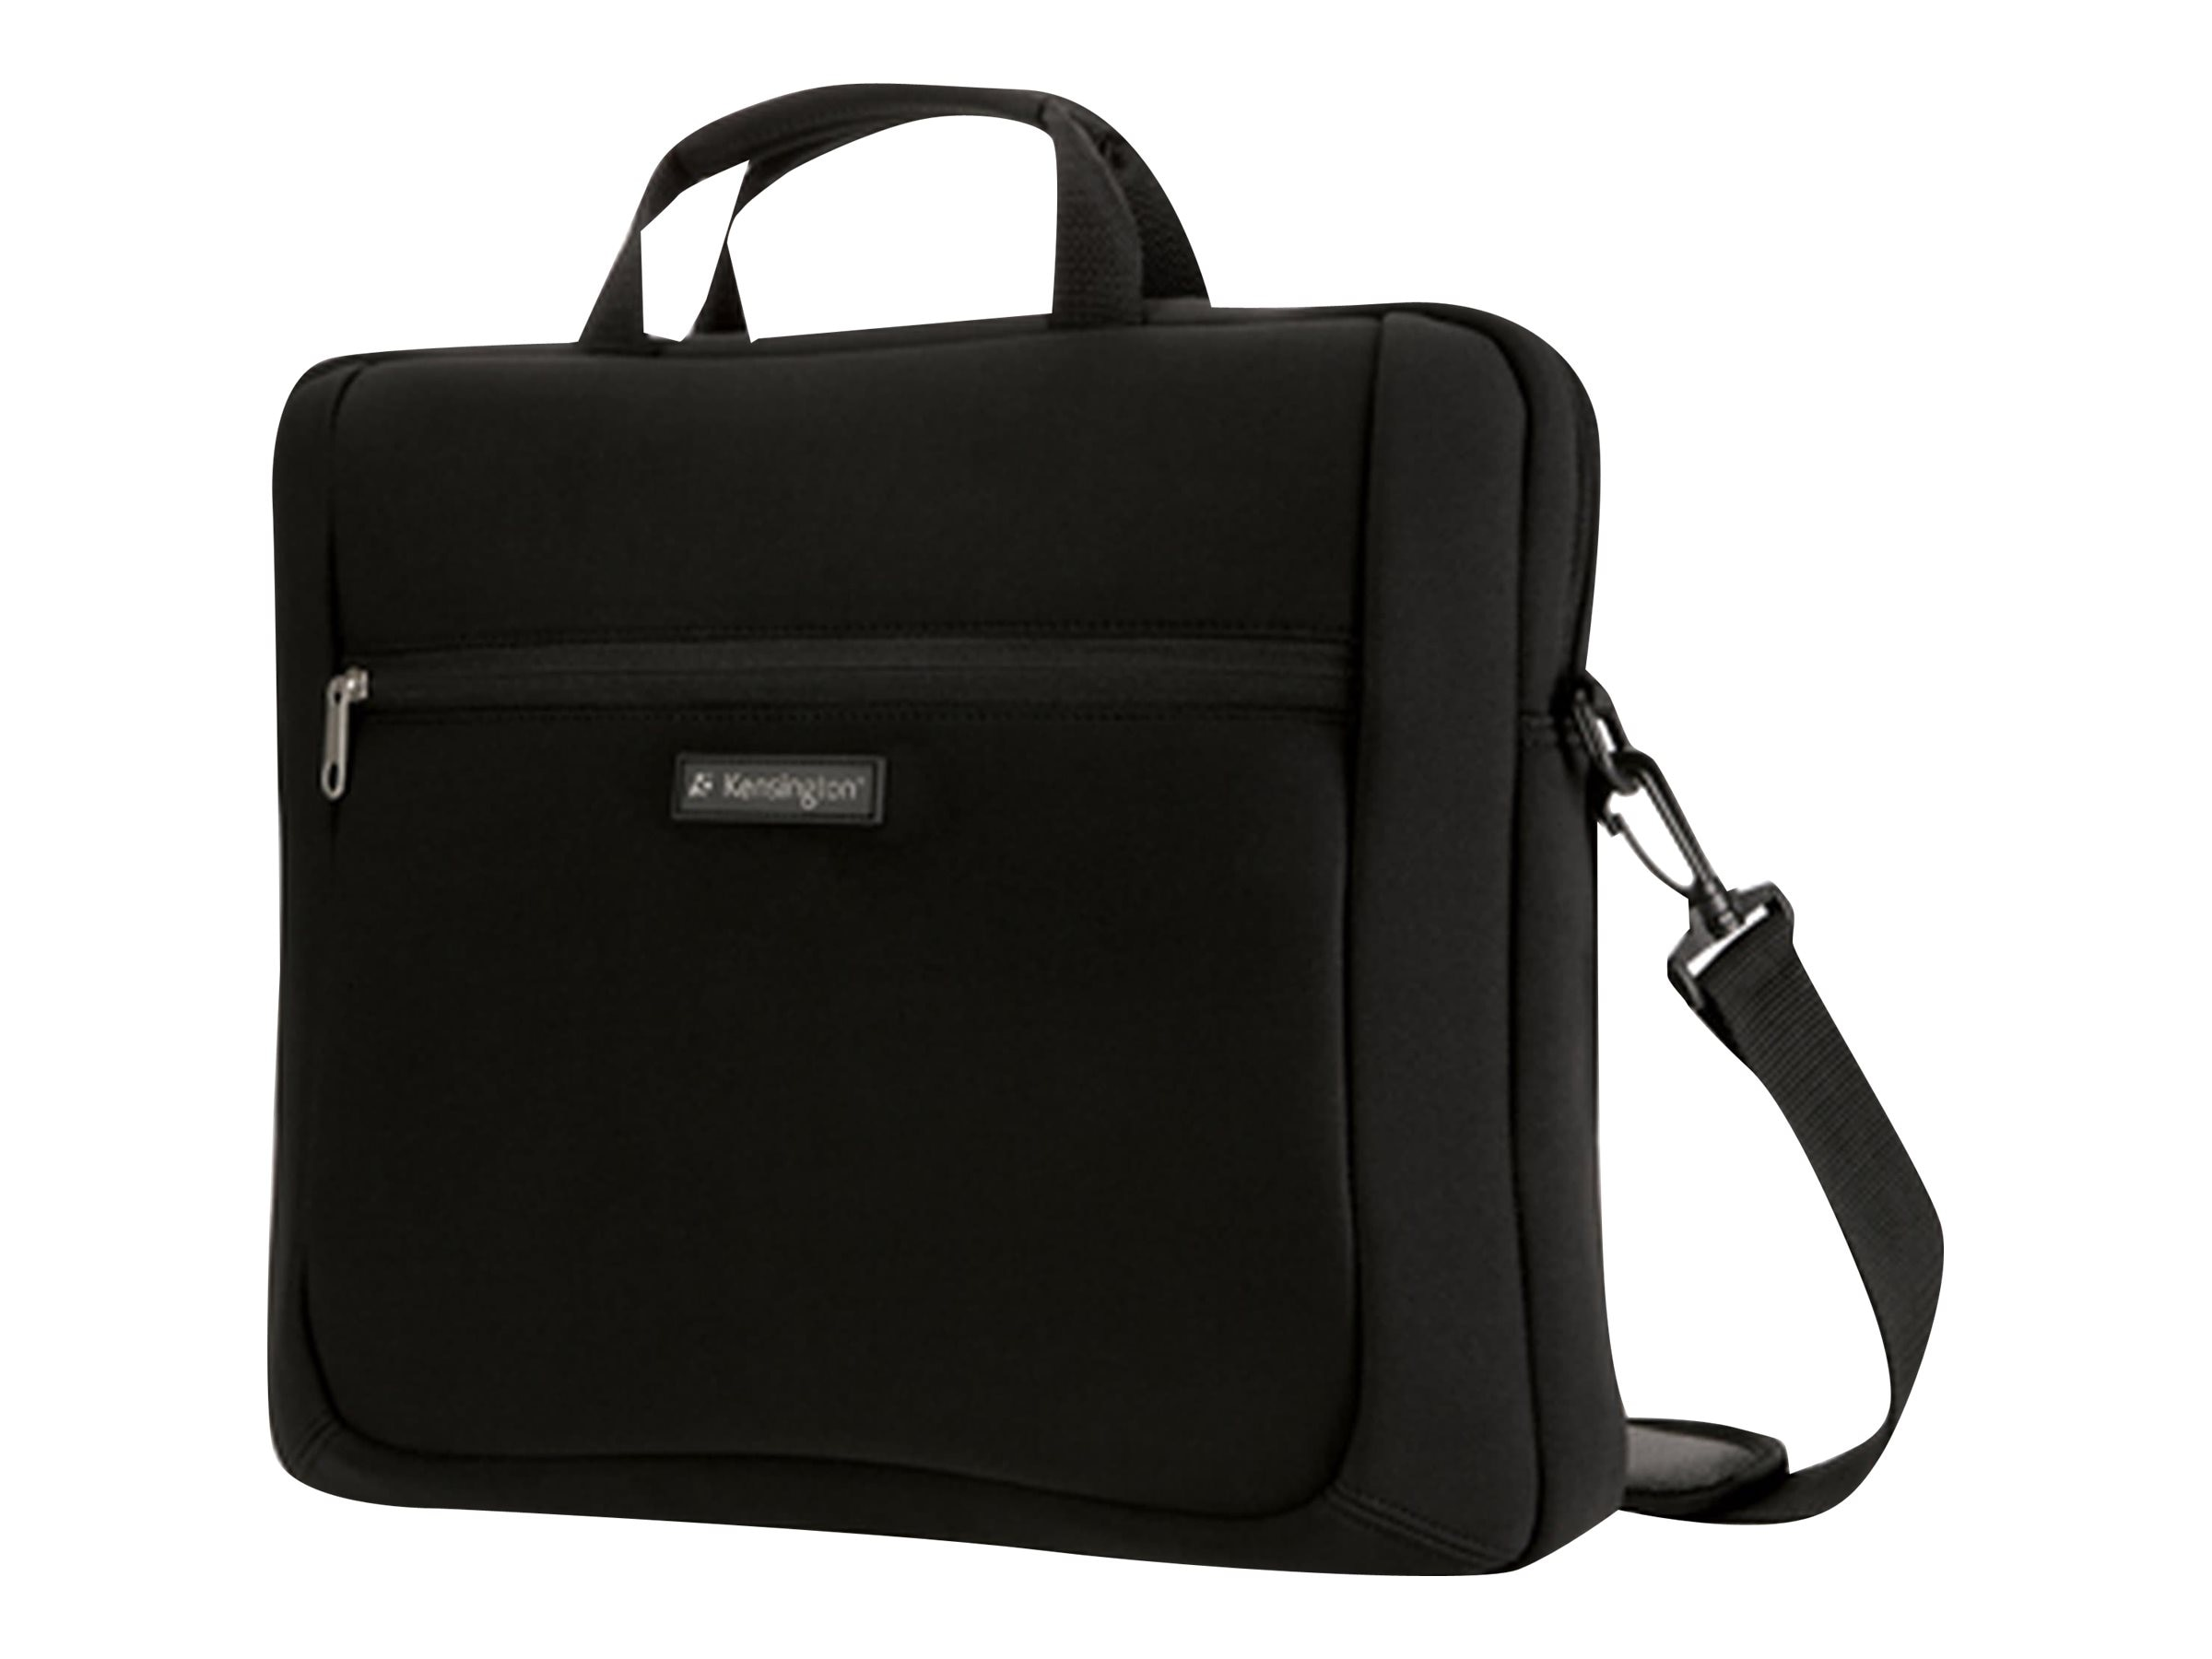 Kensington Simply Portable SP15 Neoprene Laptop Sleeve 15.6, Black